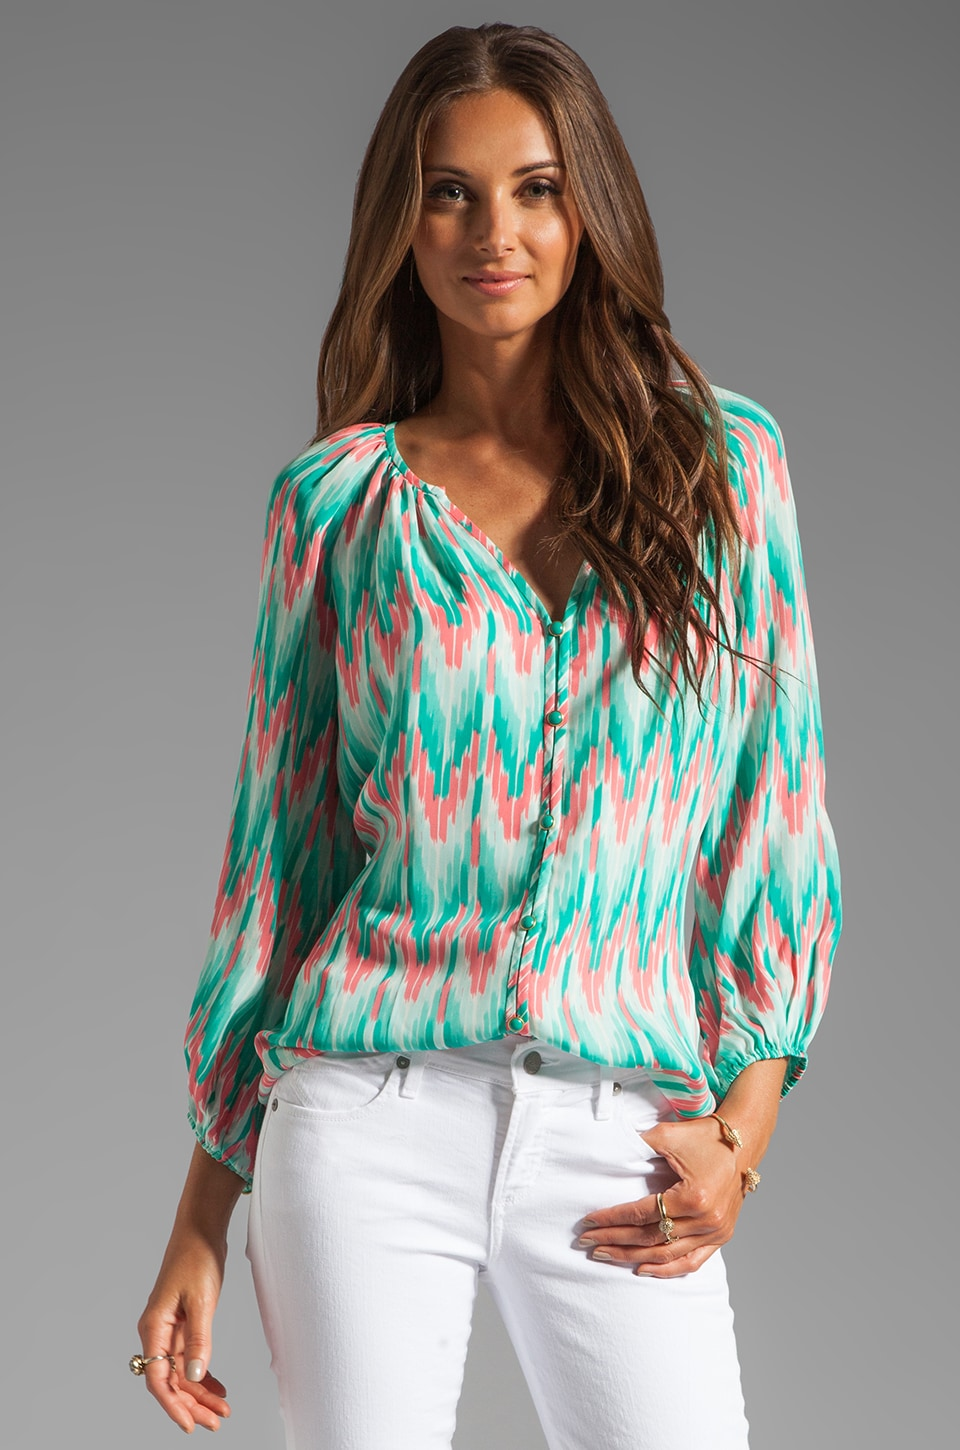 Shoshanna Renee Blouse in Cascade Ikat